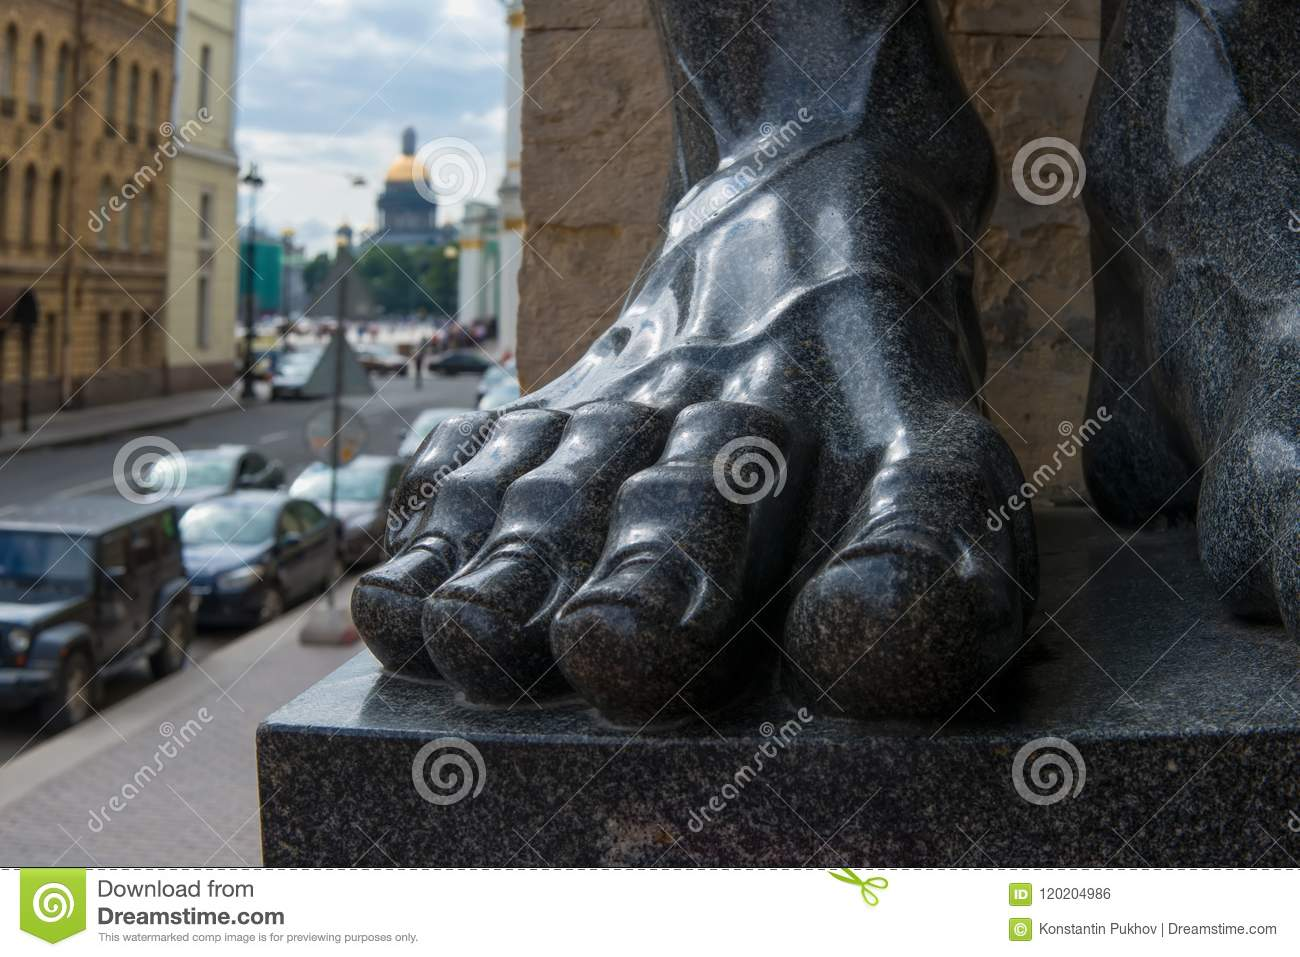 The mighty foot